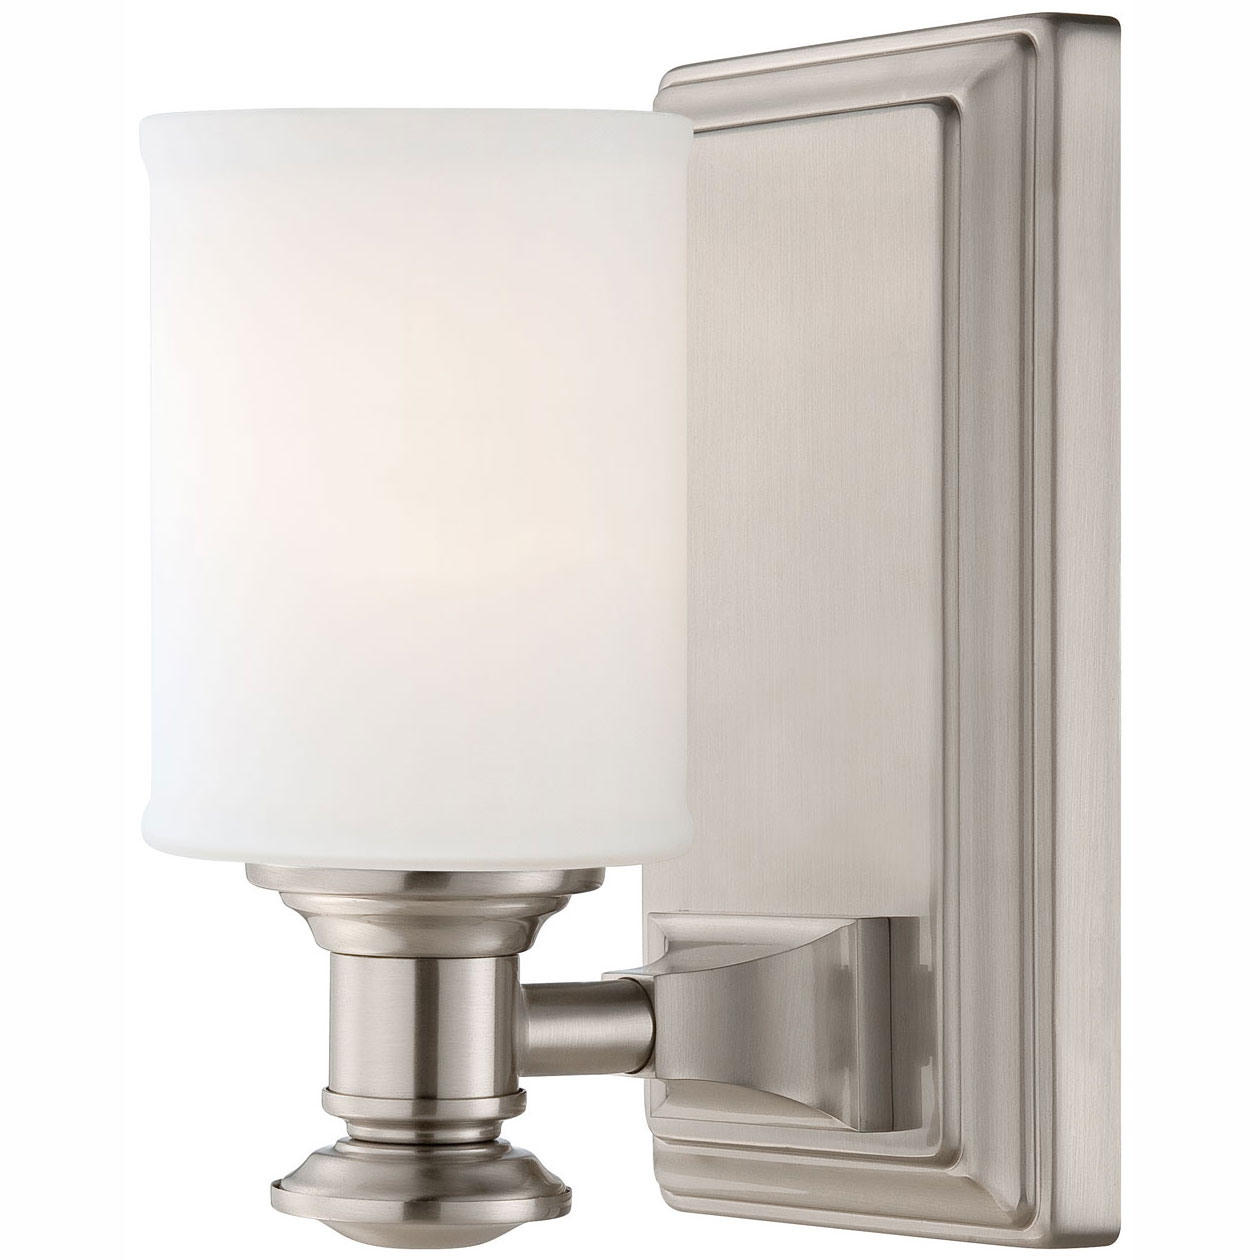 minka salon patina in grand florence lavery bolo sconce light products wall homeclick